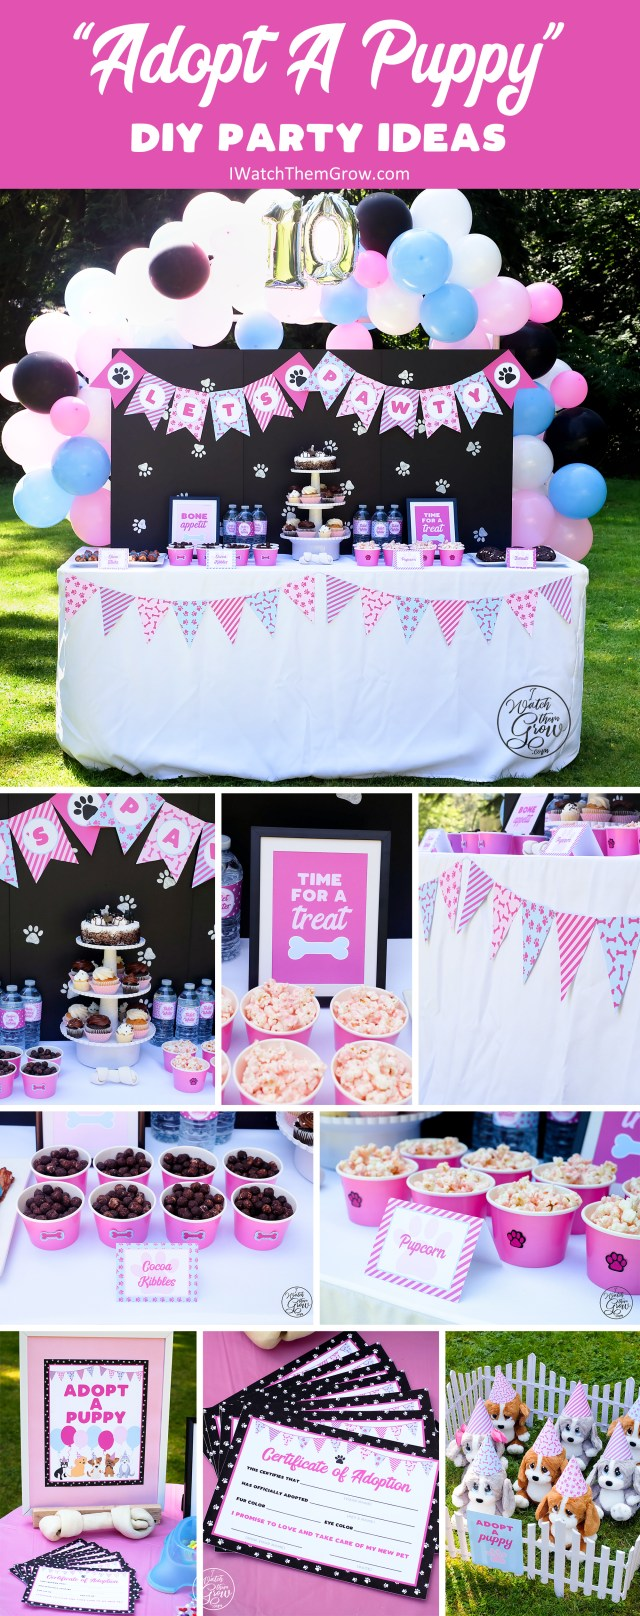 Lots of DIY budget friendly puppy party ideas!